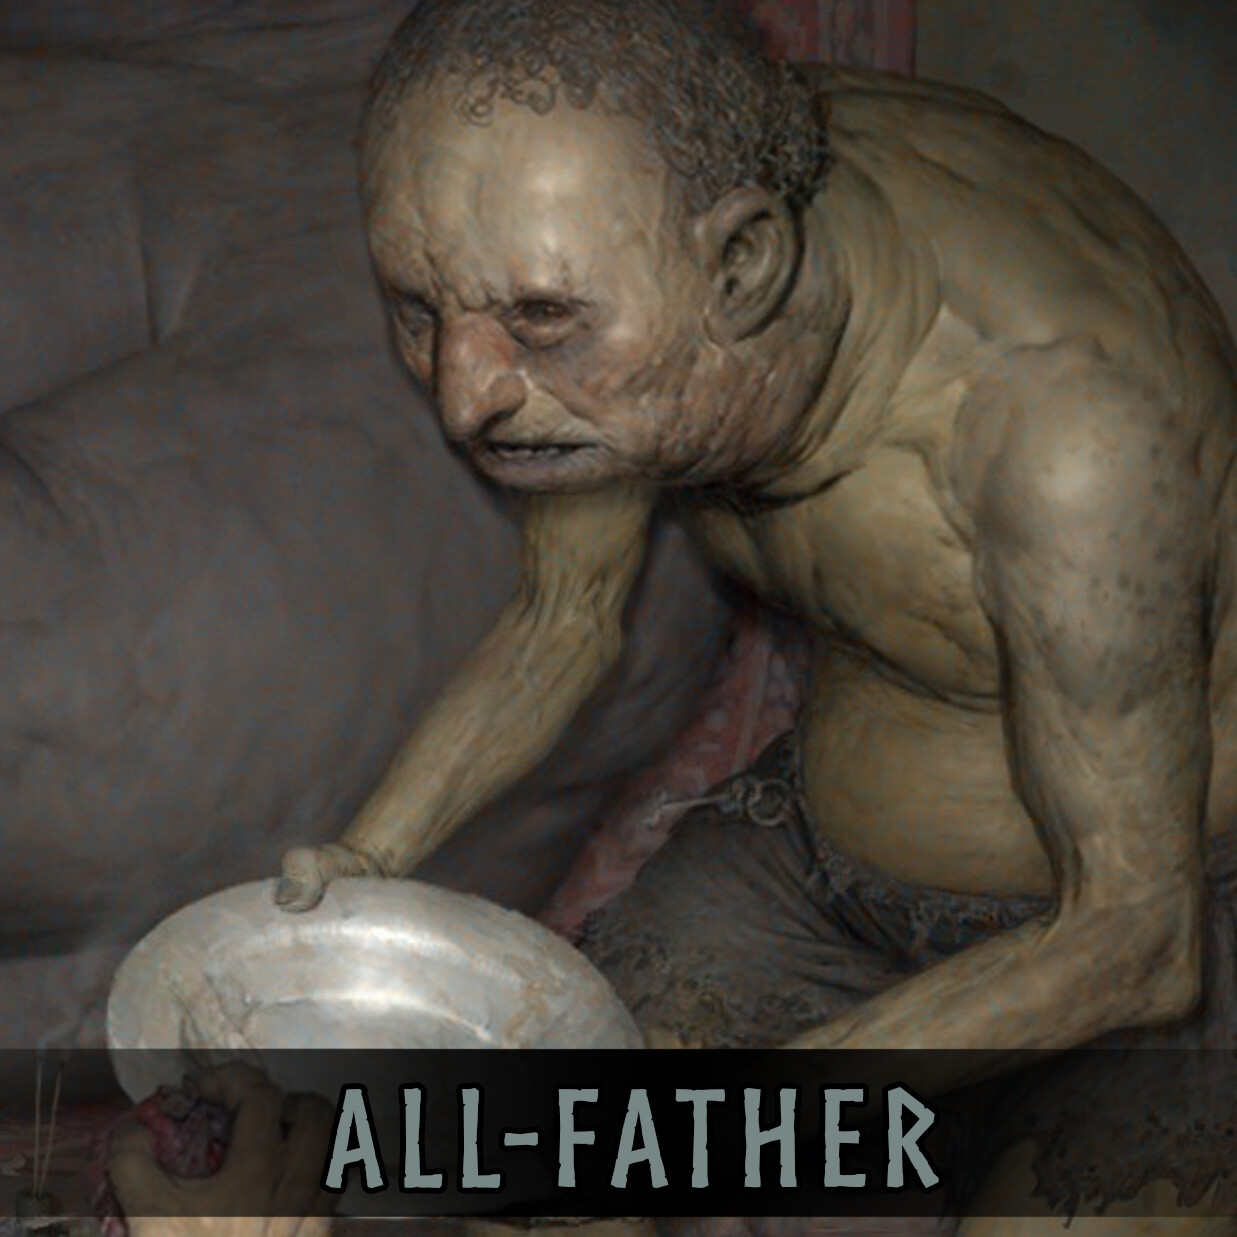 All father 4/6